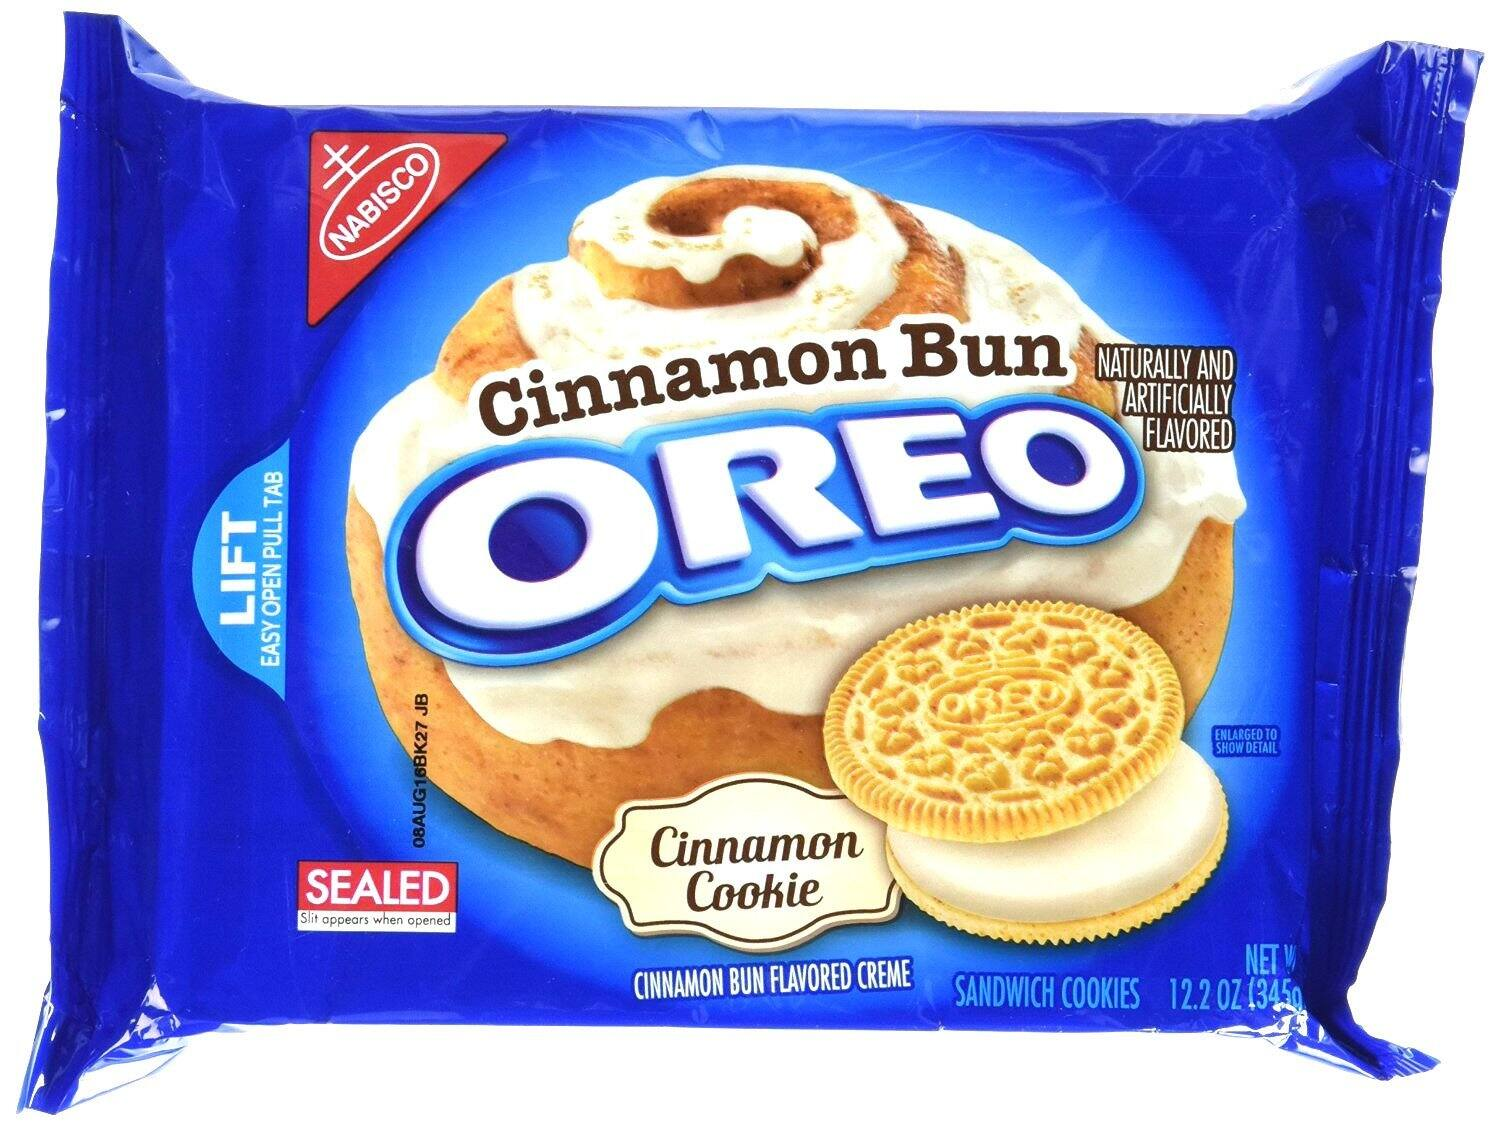 Oreo Cinnamon Bun Cookies 12.2 oz. Package as low as $2.12 w Subscribe & Save 15% Discount @ Amazon